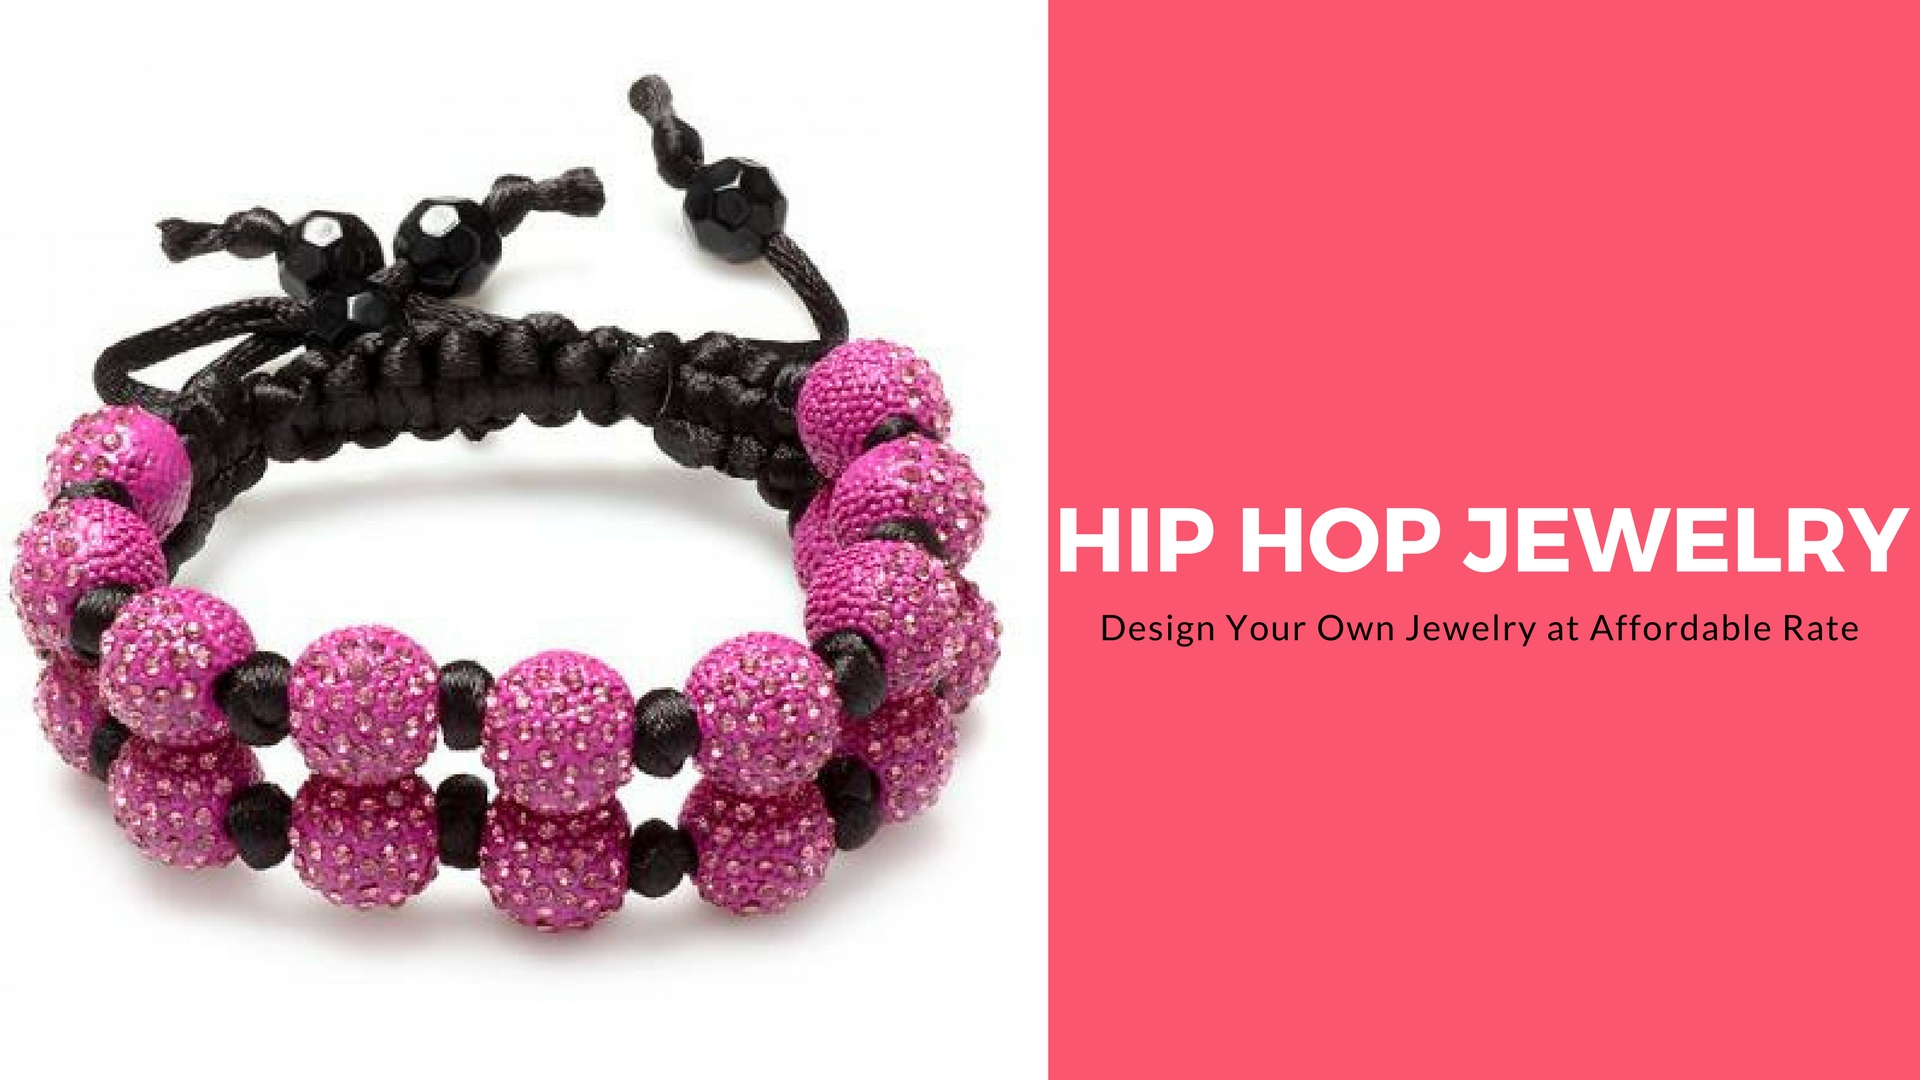 Design Your Own Hip Hop Jewelry Set at Affordable Rate - Dazzlingrock.com